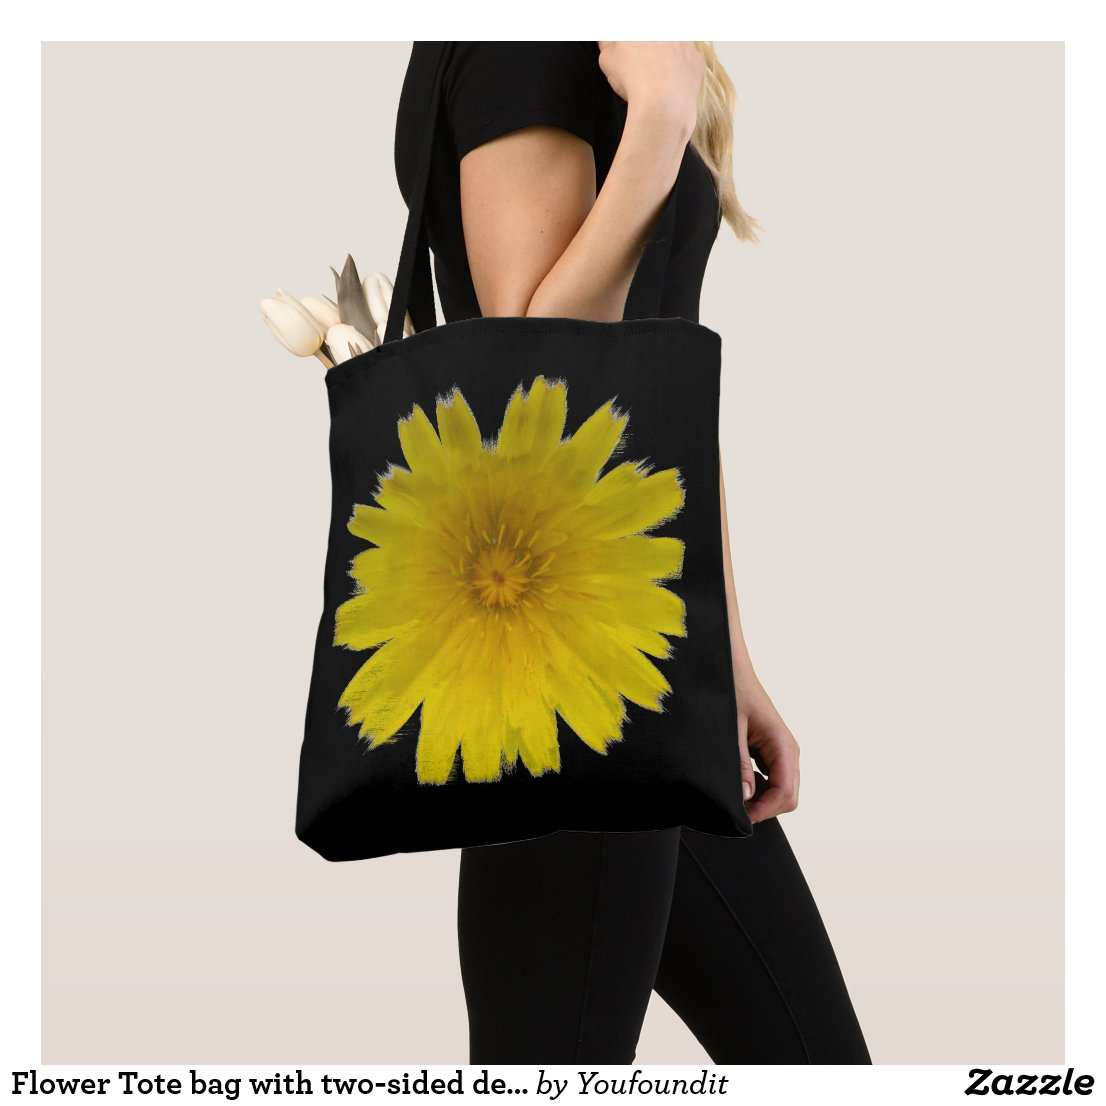 Flower Tote bag with two-sided design